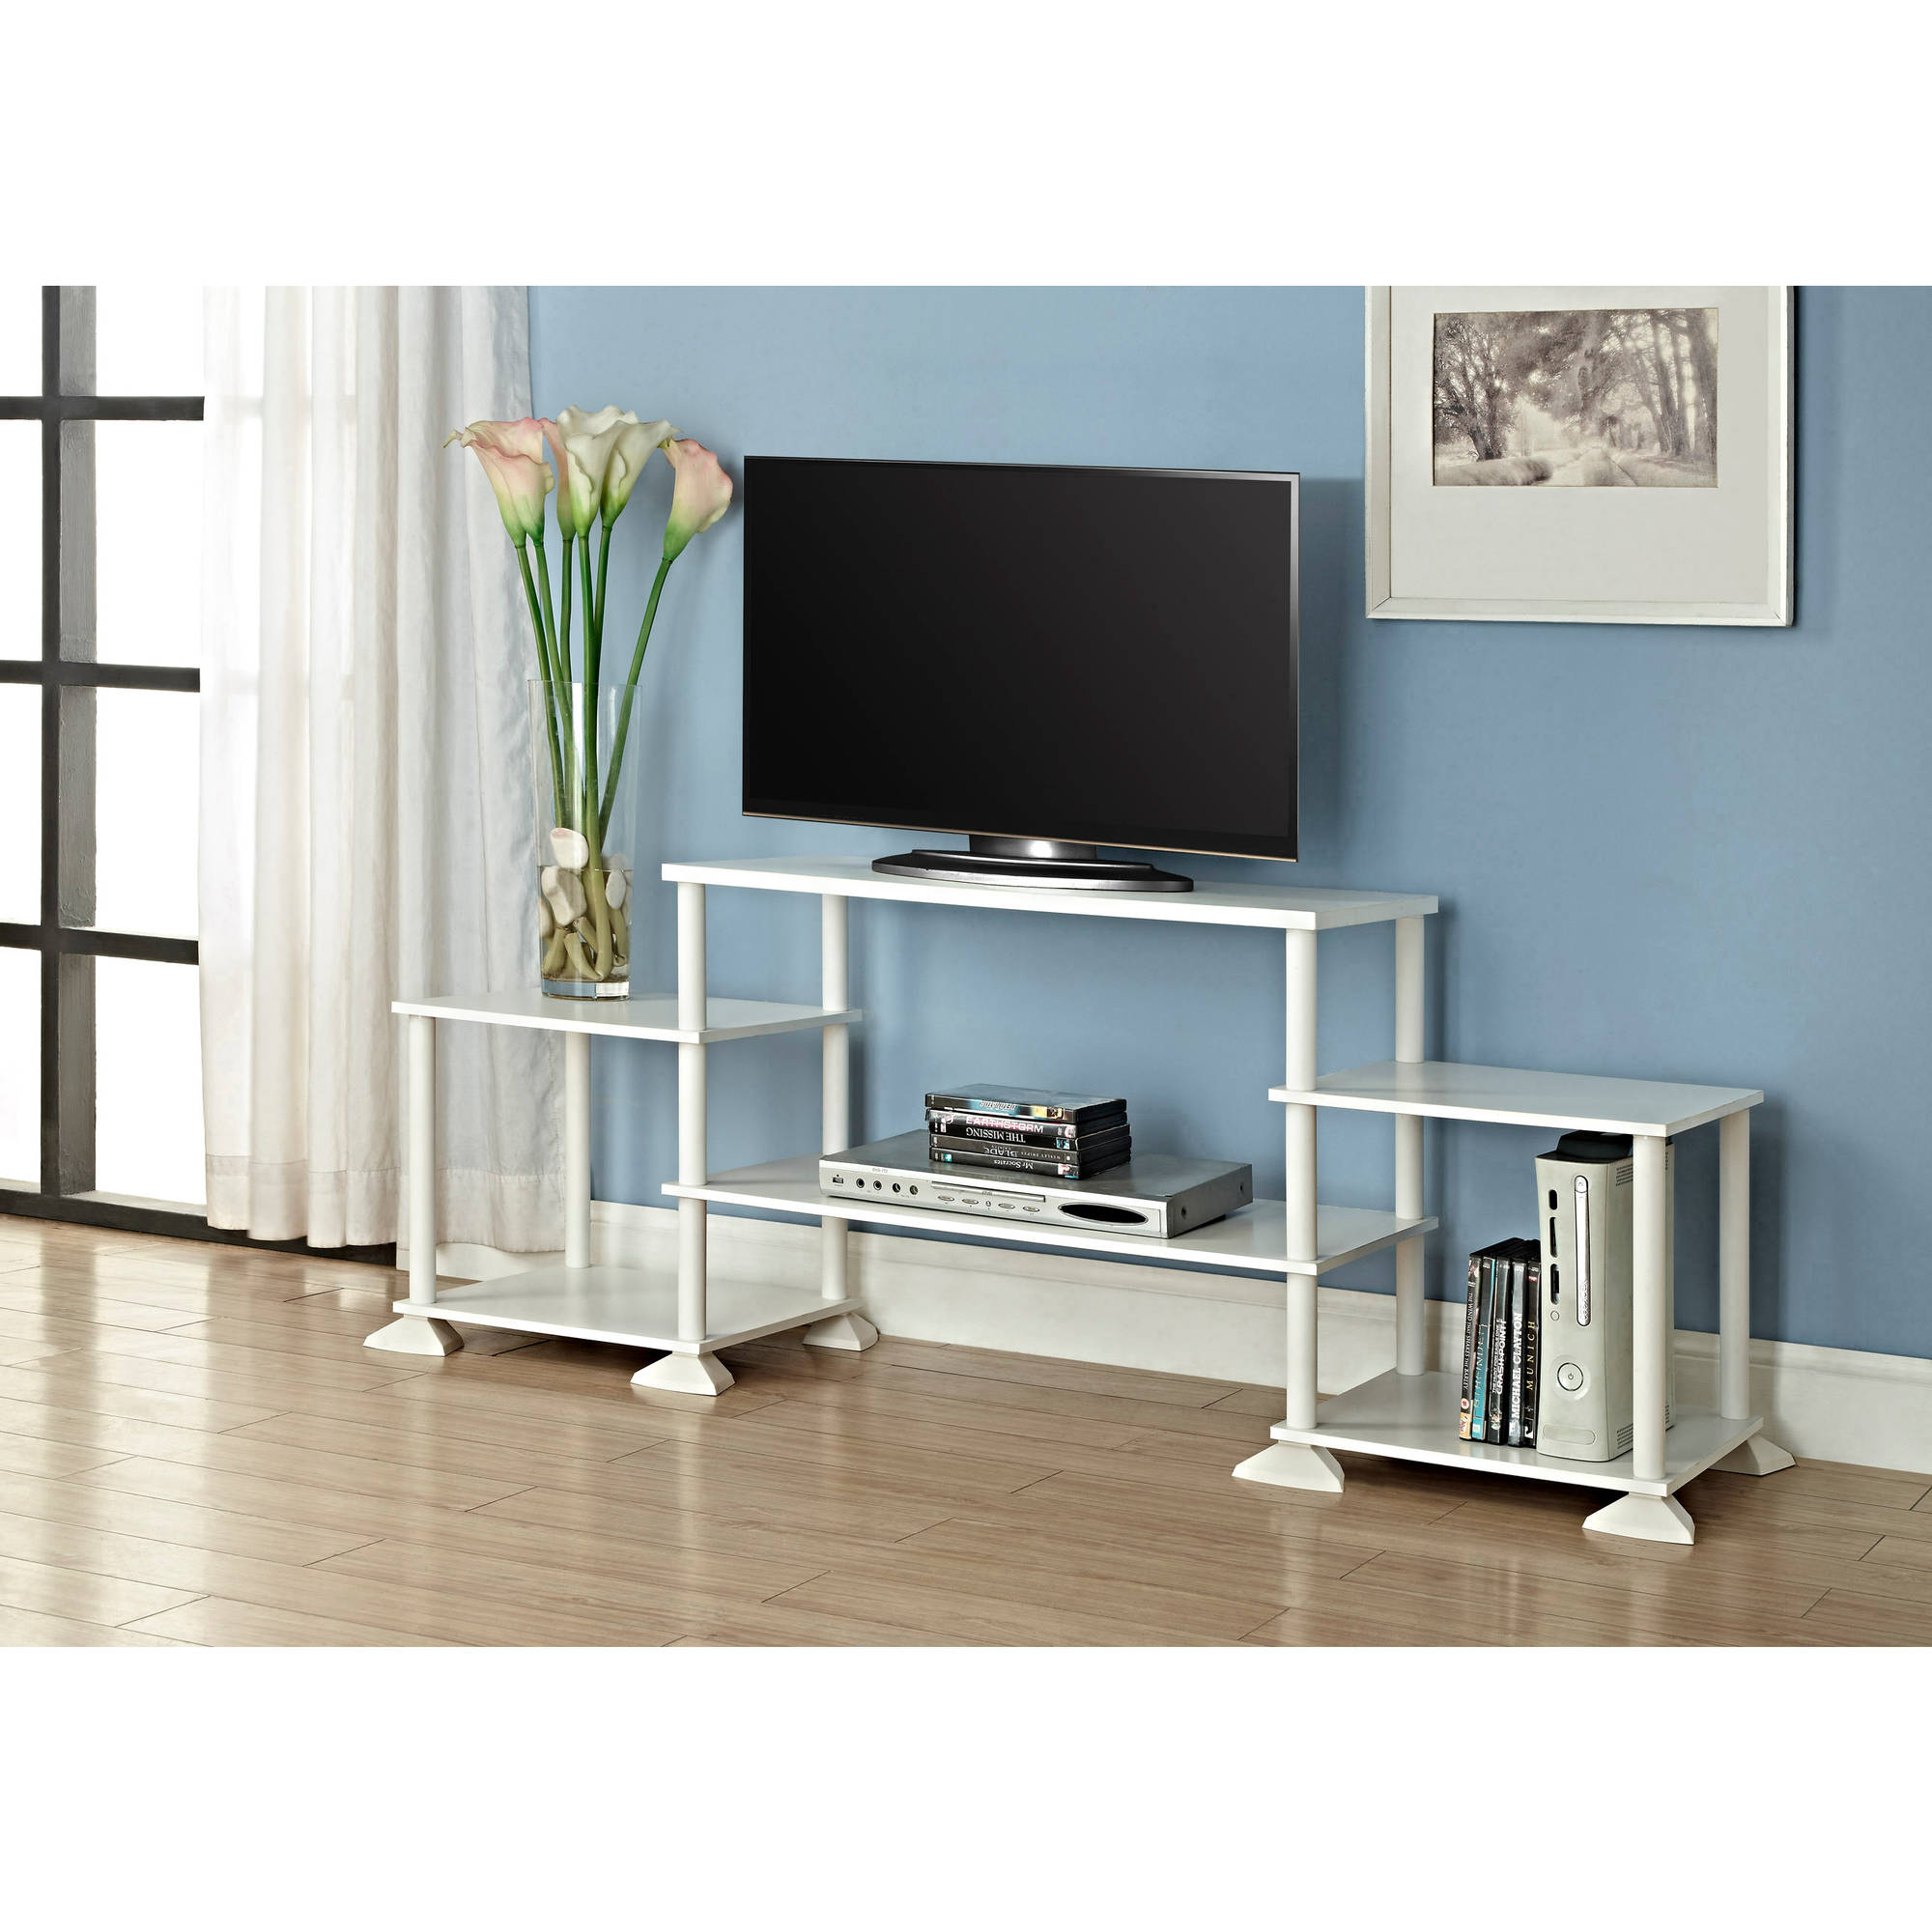 "Mainstays No Tools 3-Cube Storage Entertainment Center for TVs up to 40"", Multiple Colors"